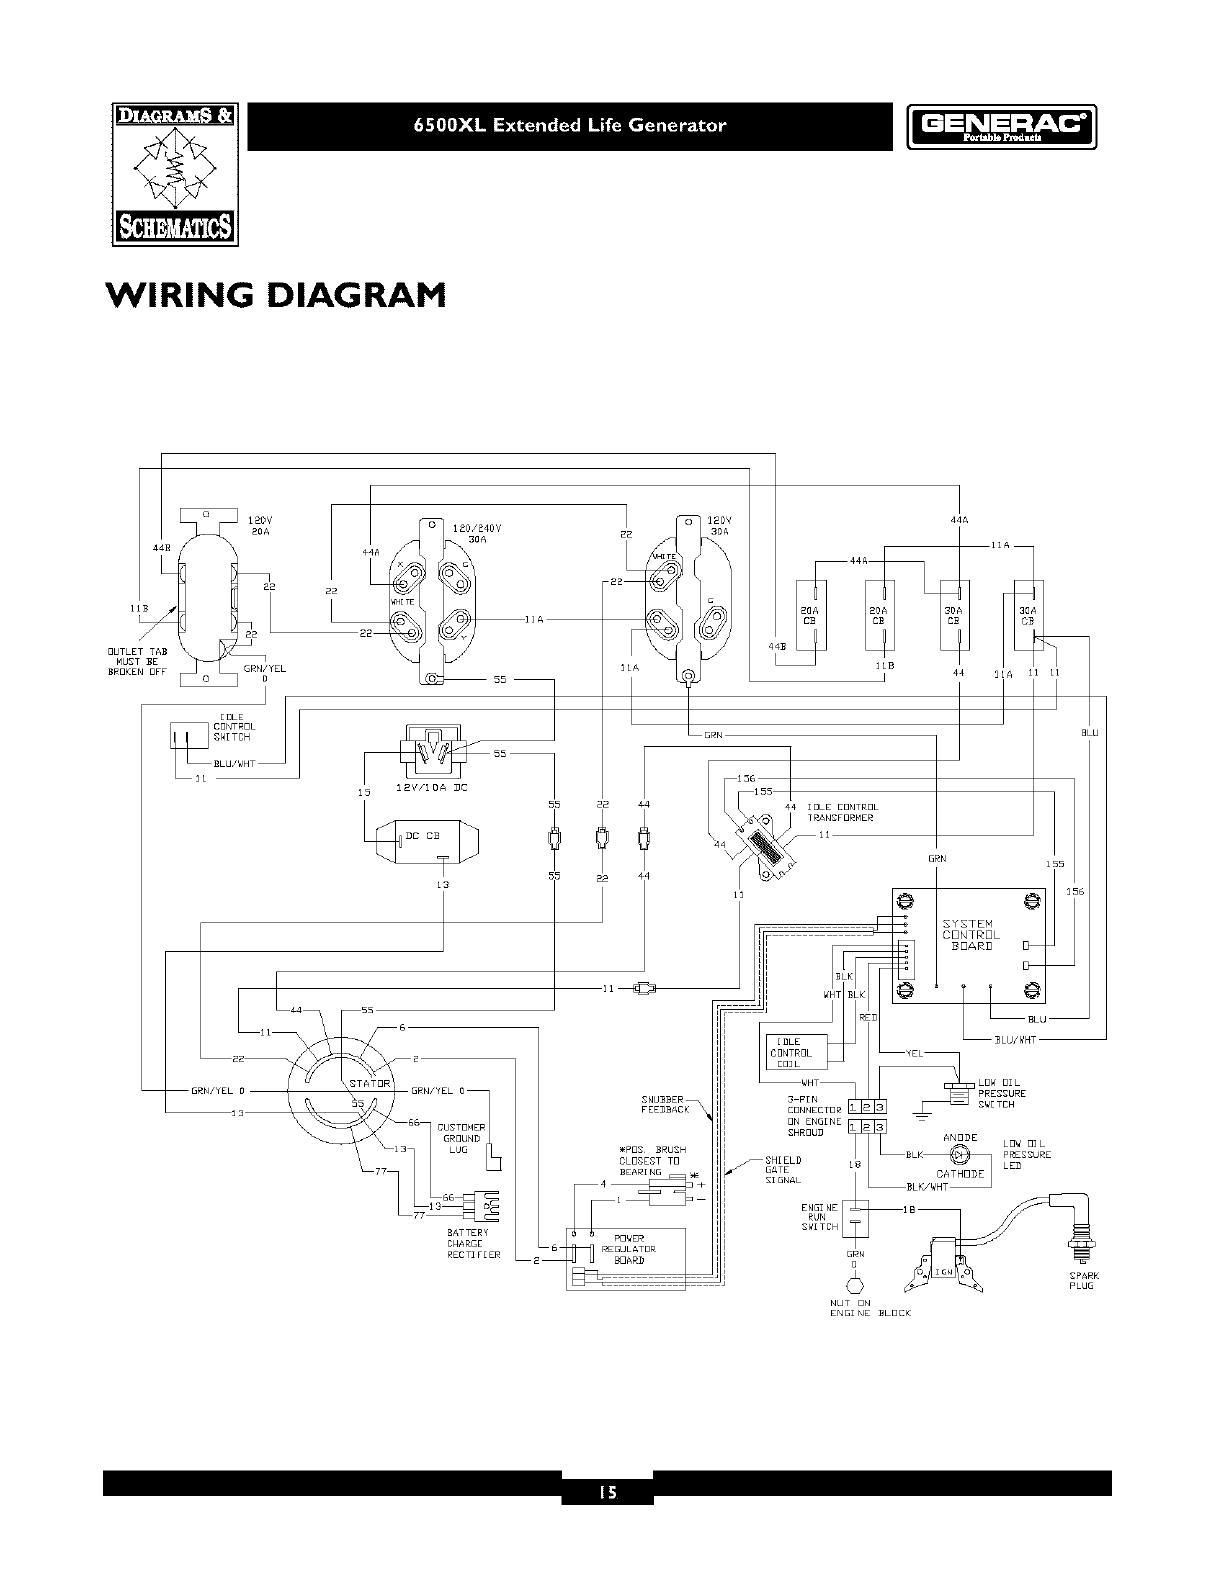 abacbfe4 09c9 46f3 b904 b7a0ca98baaa bgf page 15 of generac portable generator 6500xl user guide abac air compressor wiring diagram at reclaimingppi.co